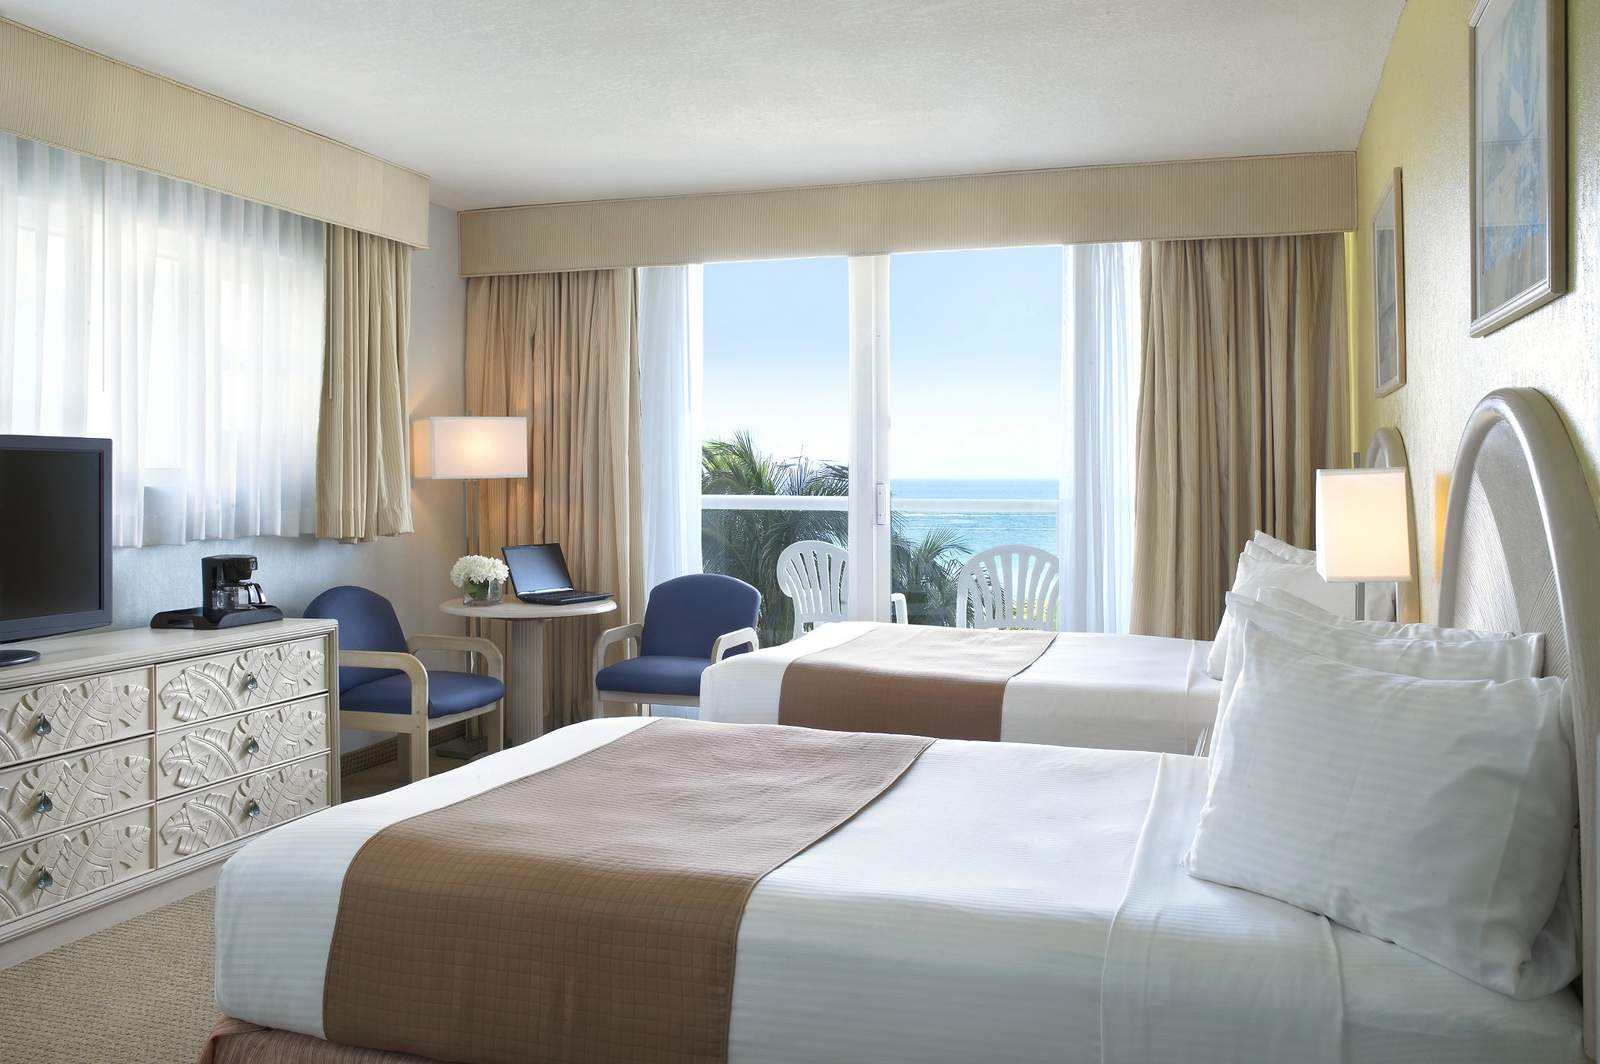 atlantic beach chat rooms Our atlantic beach, nc hotel rooms offer magnificent water views 190 of our 200 hotel rooms have views of the water and all have access to the beach.